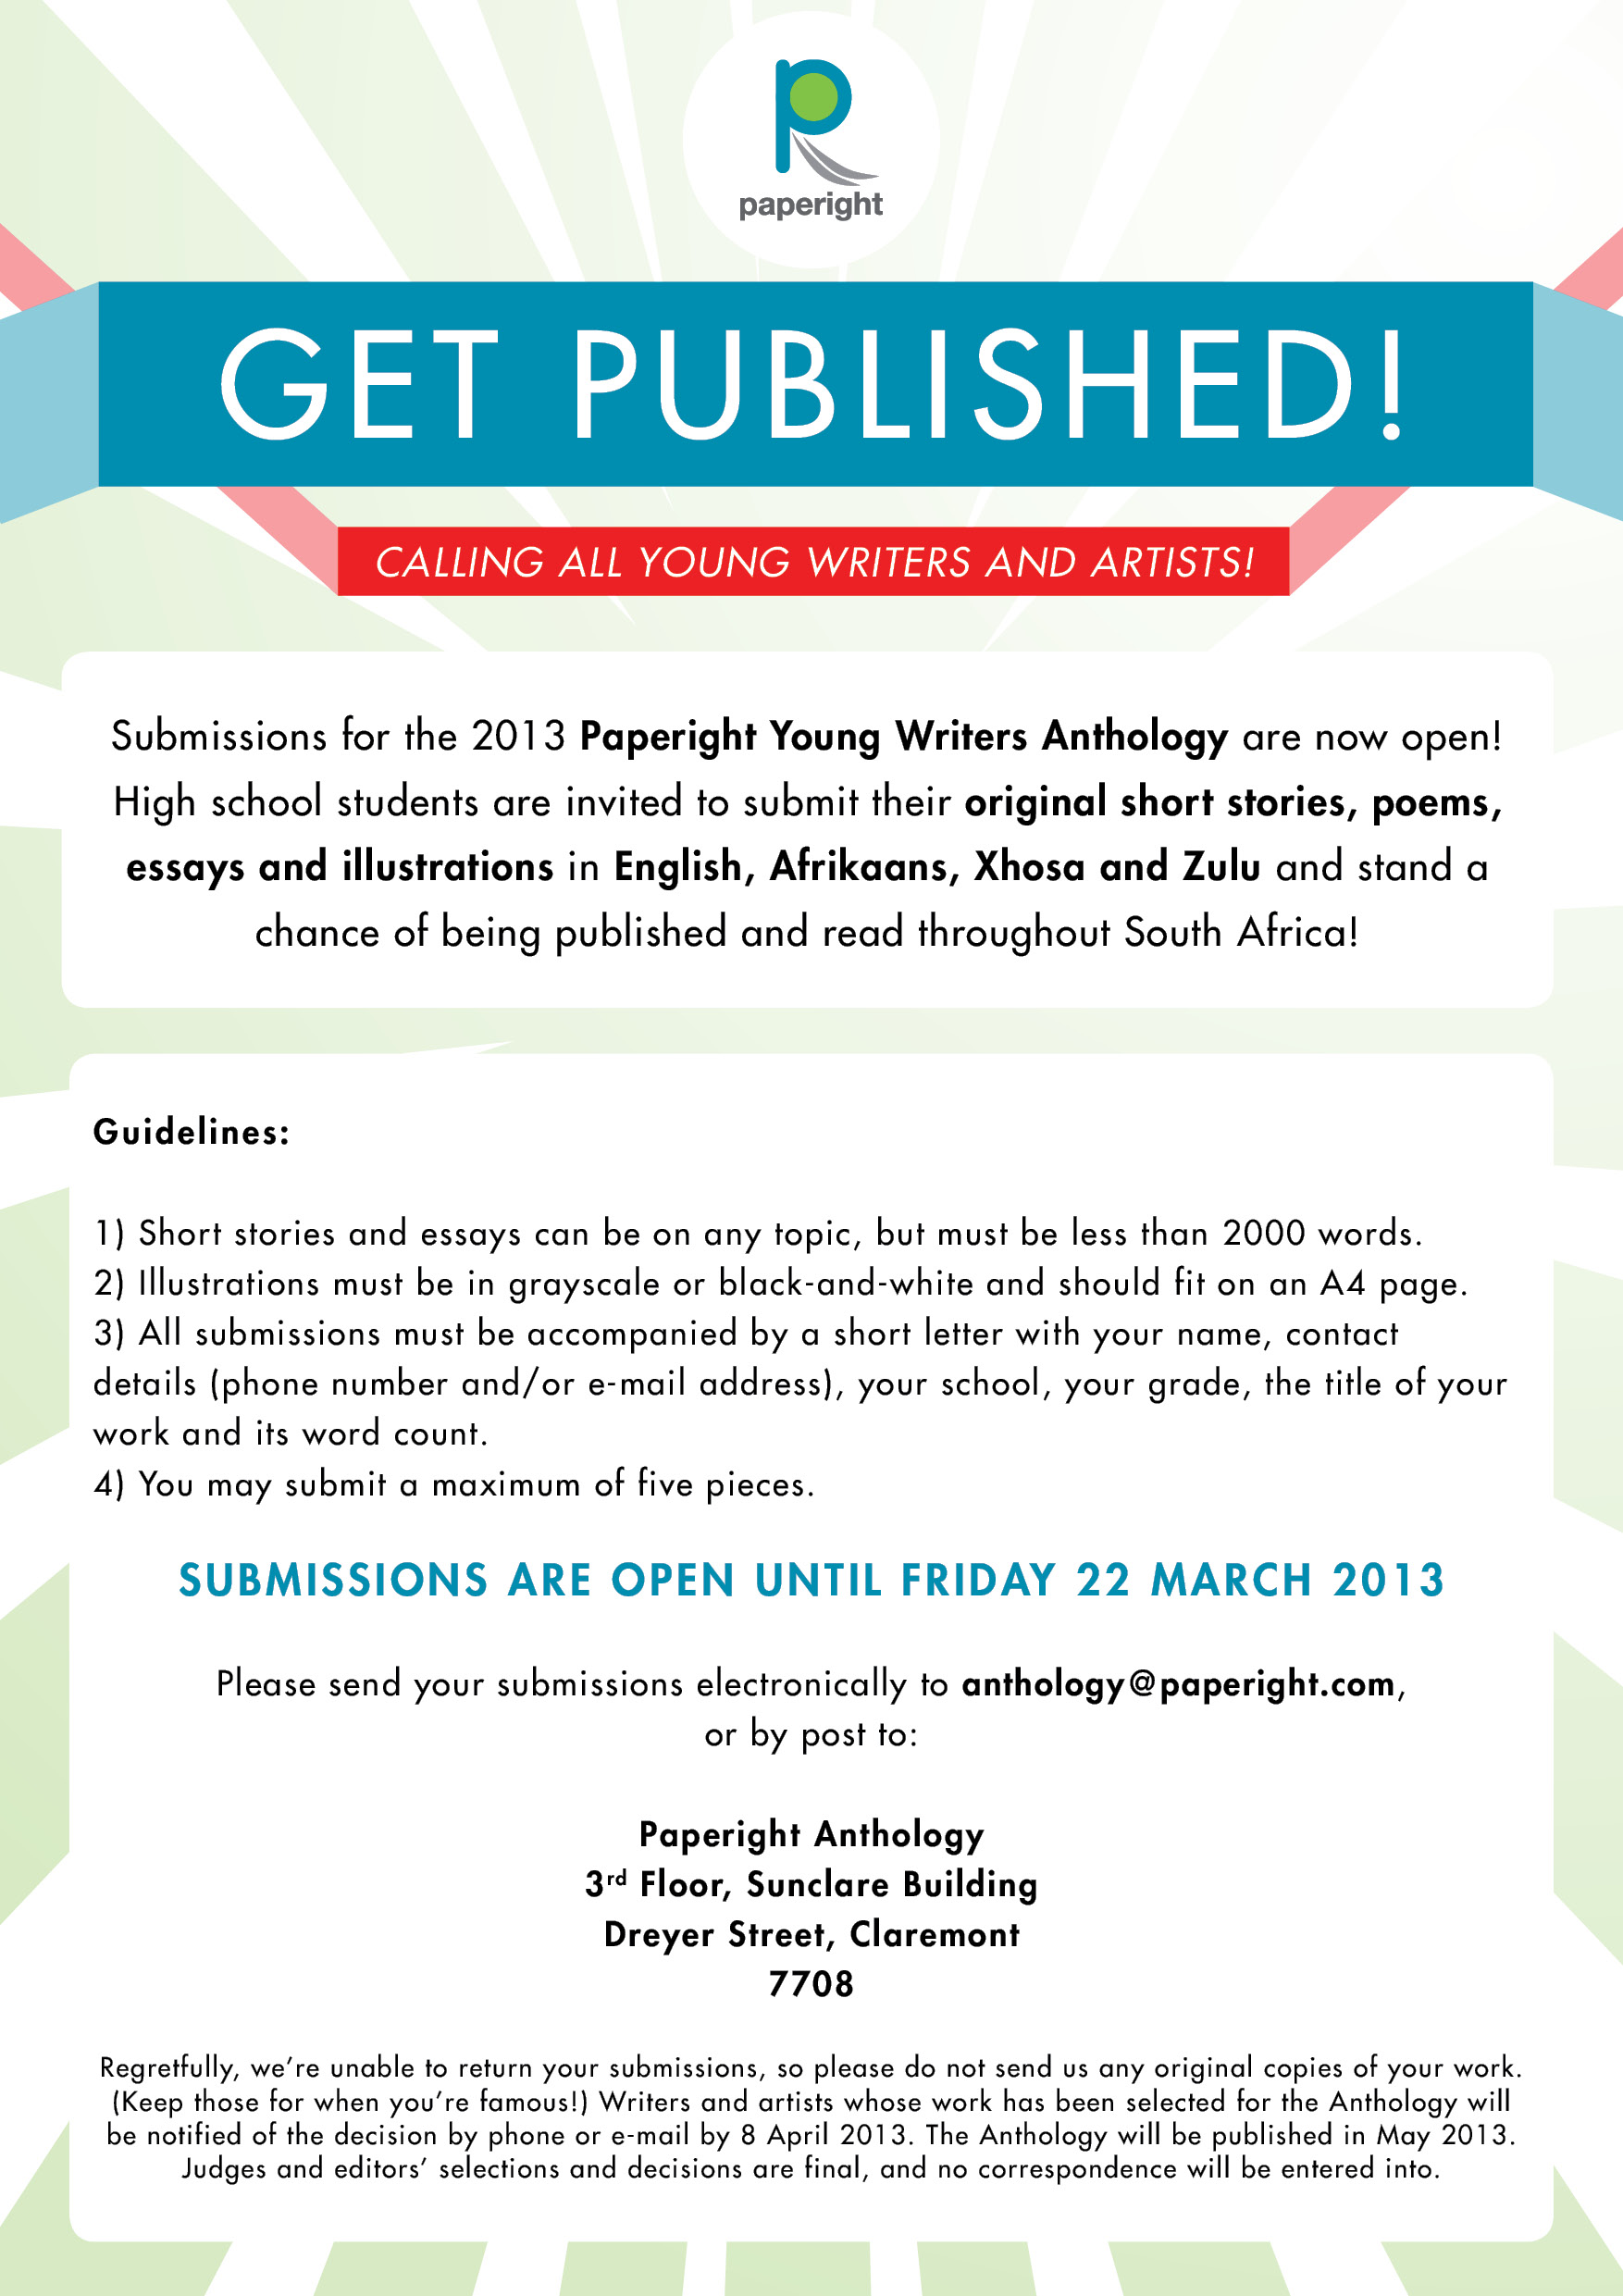 call for submissions paperight young writers anthology the call for submissions paperight young writers anthology 2013